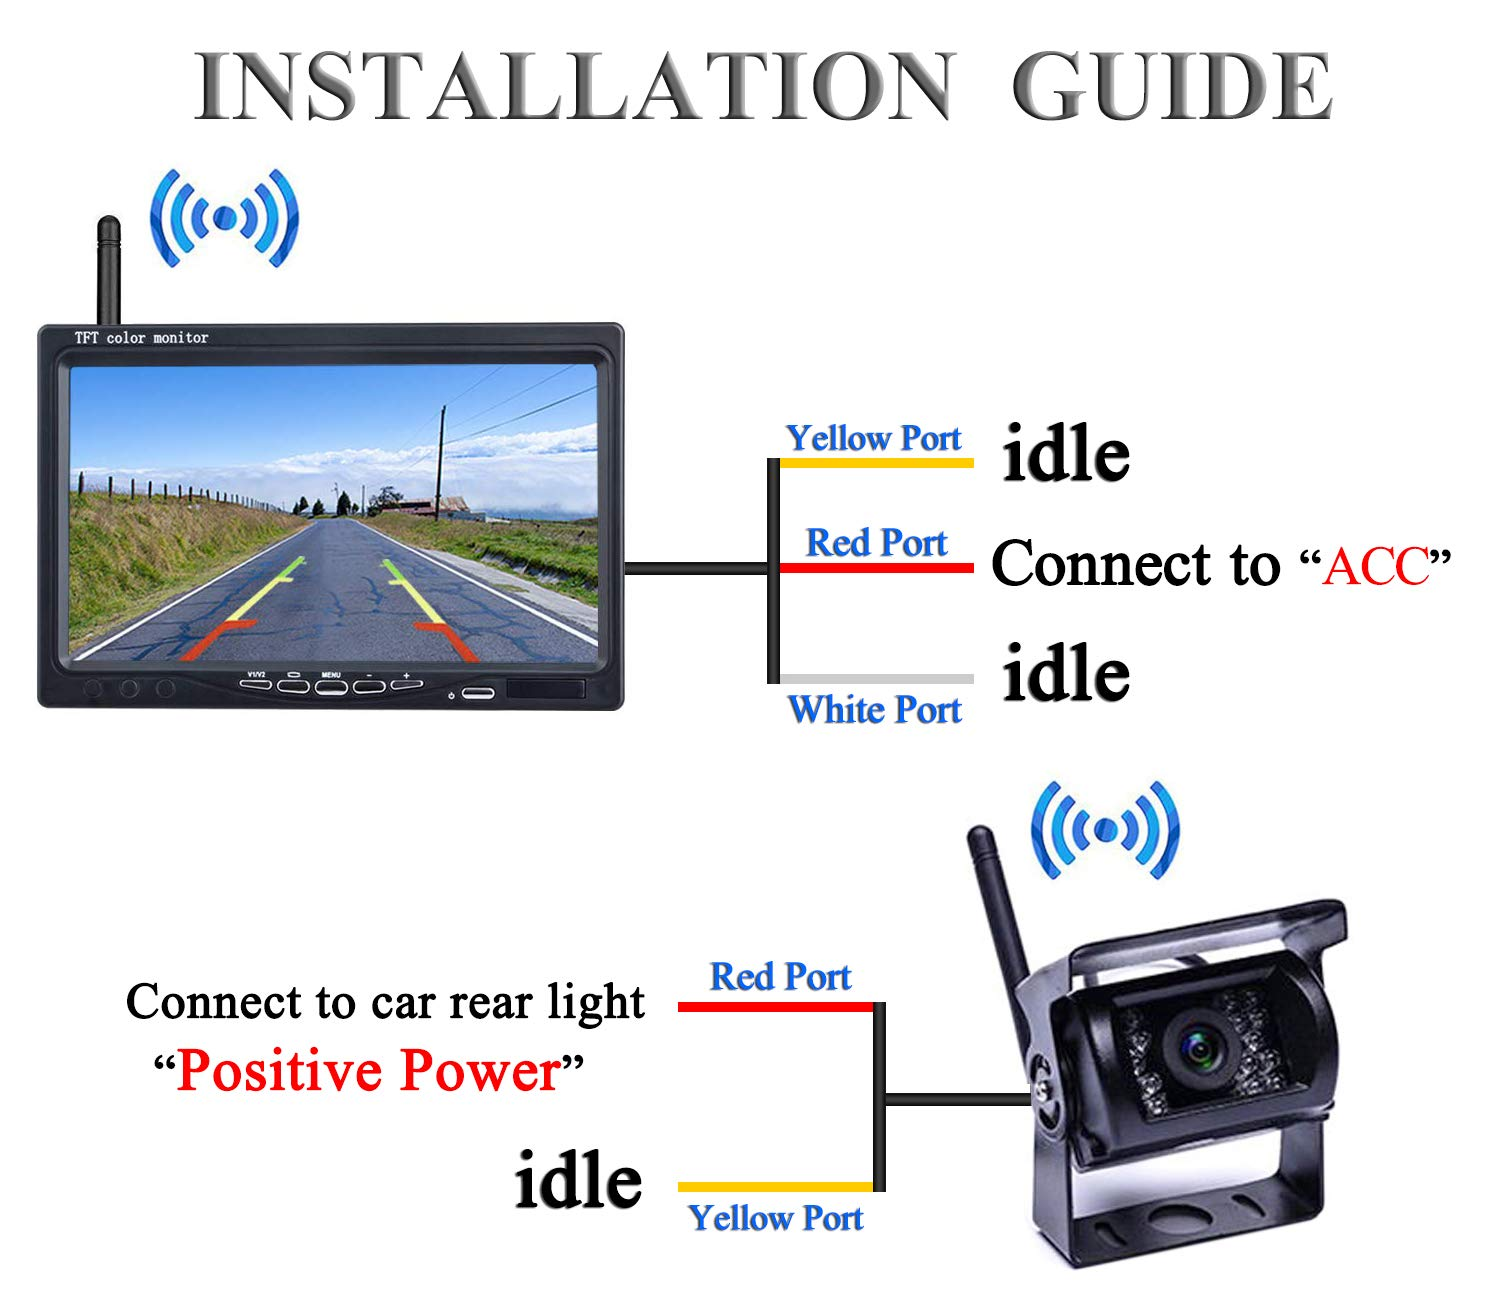 Honboom Built-in Wireless Vehicle Parking System Car etc. Van Bus 7 inches HD LCD TFT Monitor /& Backup Camera IR Night Vision Surveillance Parking Kit for Heavy Duty Vehicle Truck